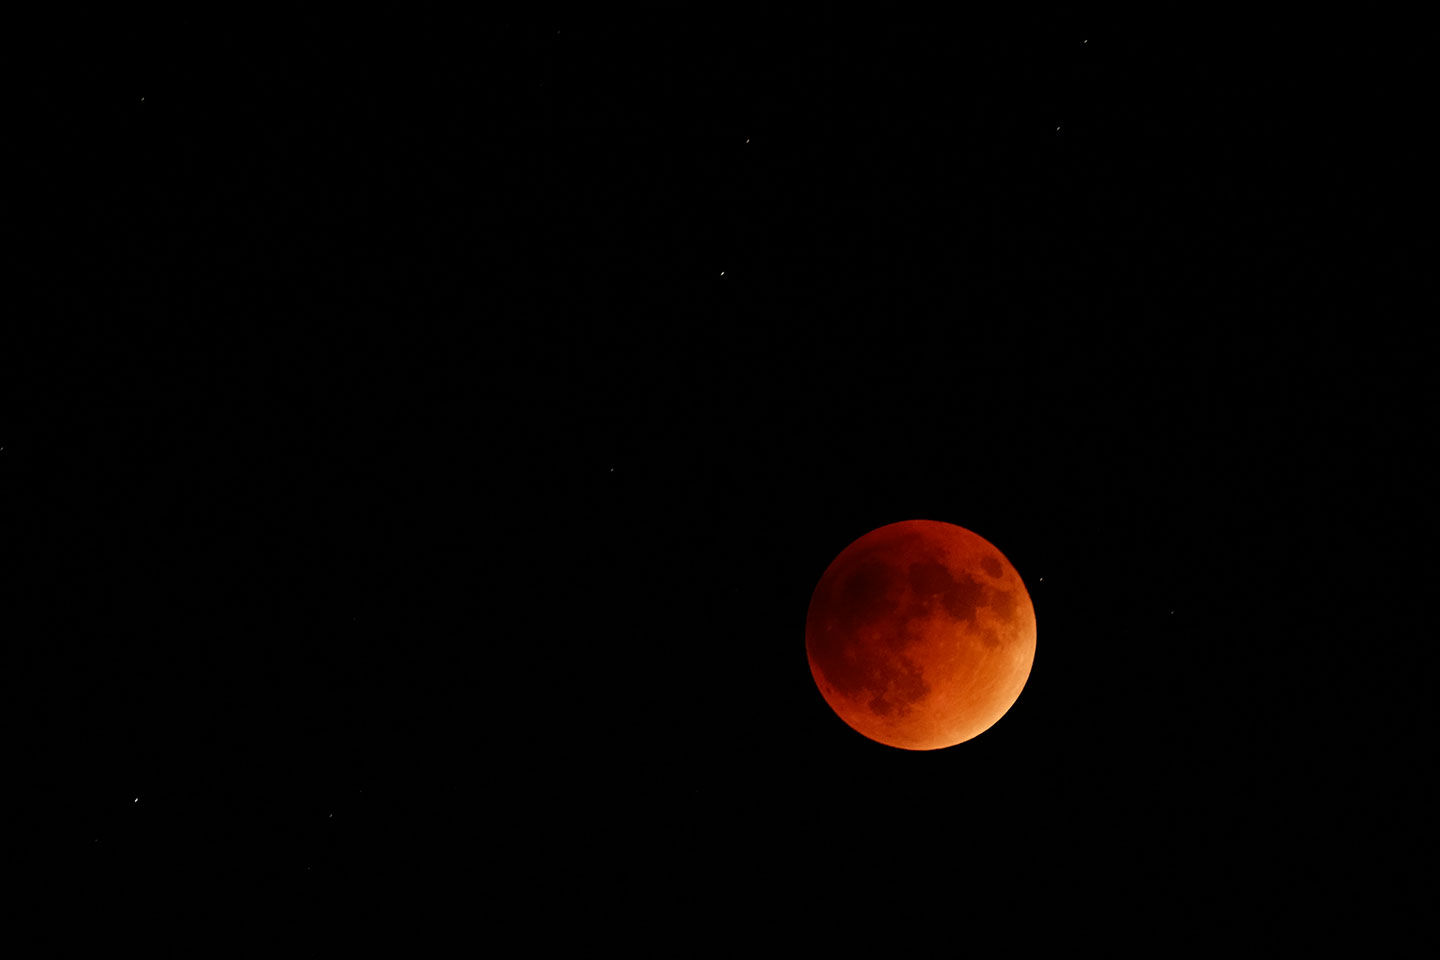 Supermoon's lunar eclipse aka the Blood Moon